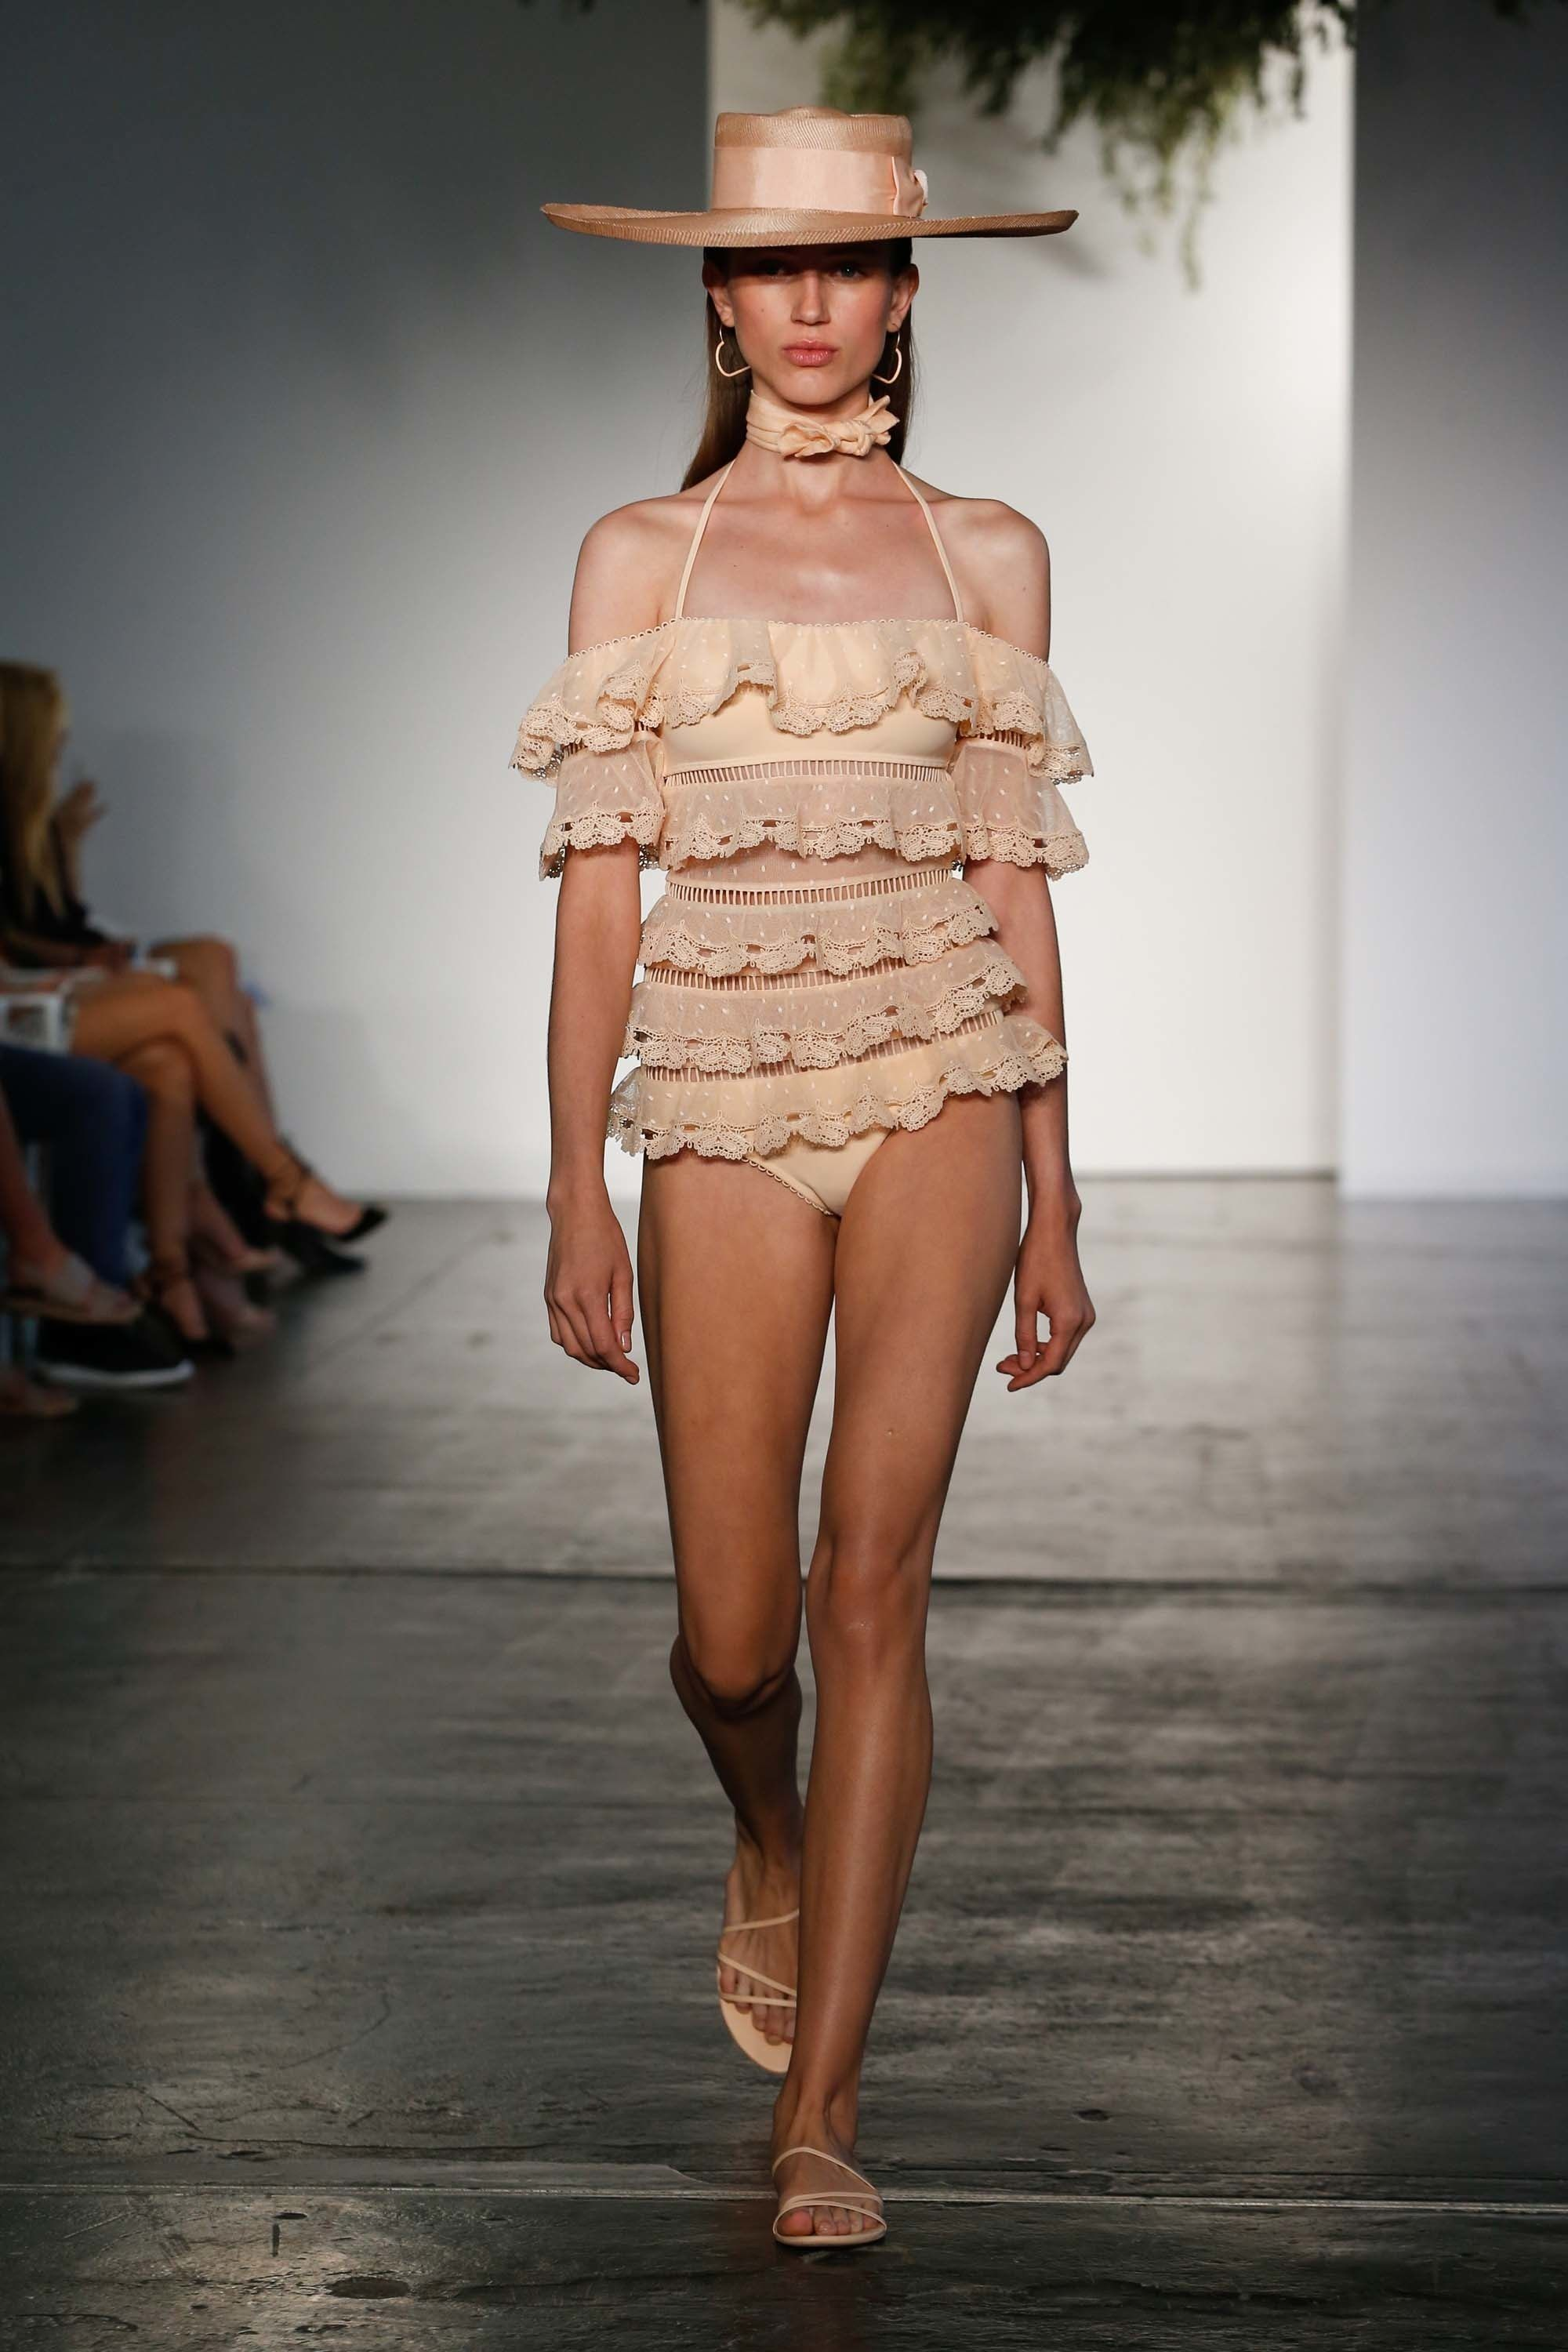 Forum on this topic: Zimmermann Summer 2019 Swimsuits, zimmermann-summer-2019-swimsuits/